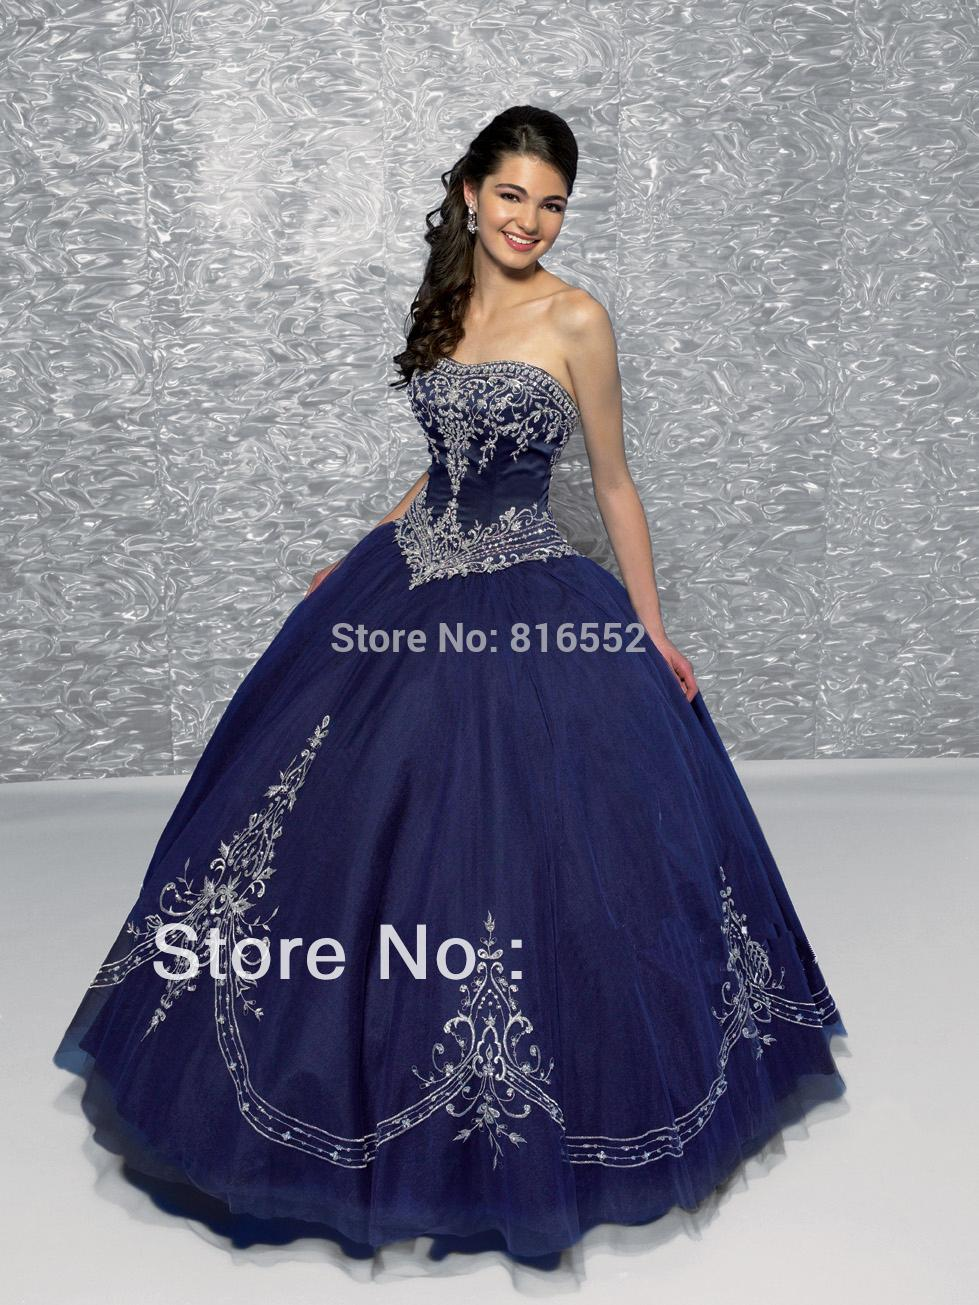 Aliexpress.com : Buy 2017 New Dark Blue Quinceanera Dresses With ...